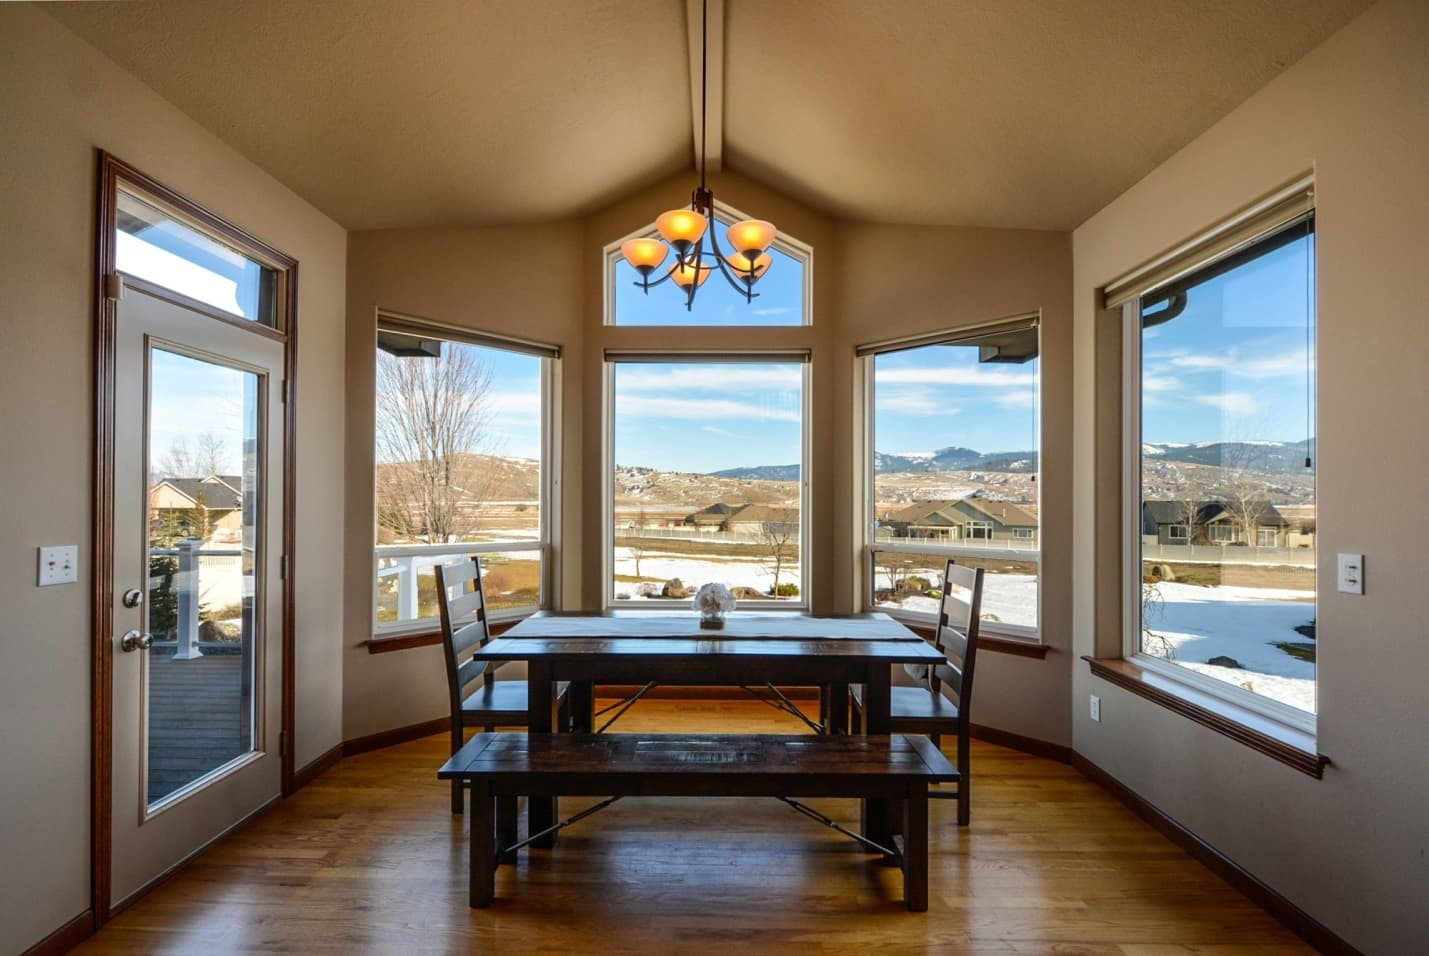 8 Different Types of Windows That Can Boost Your Home's Curb Appeal. Bay window and the dining zone